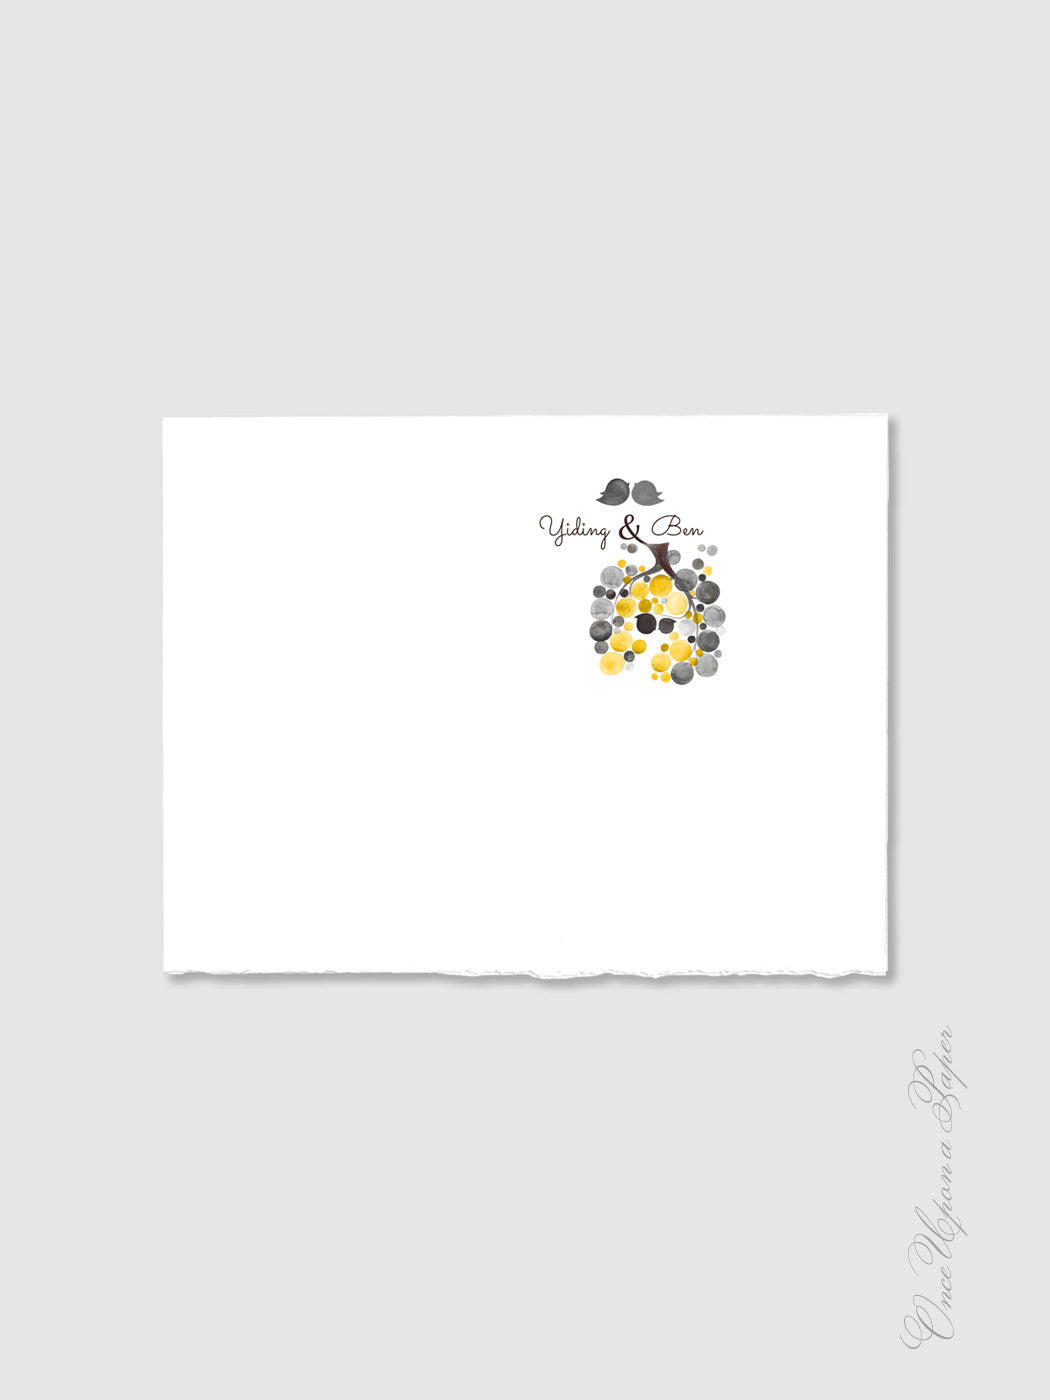 Wedding Envelope Card Design - DIY Printable Custom Wedding ...